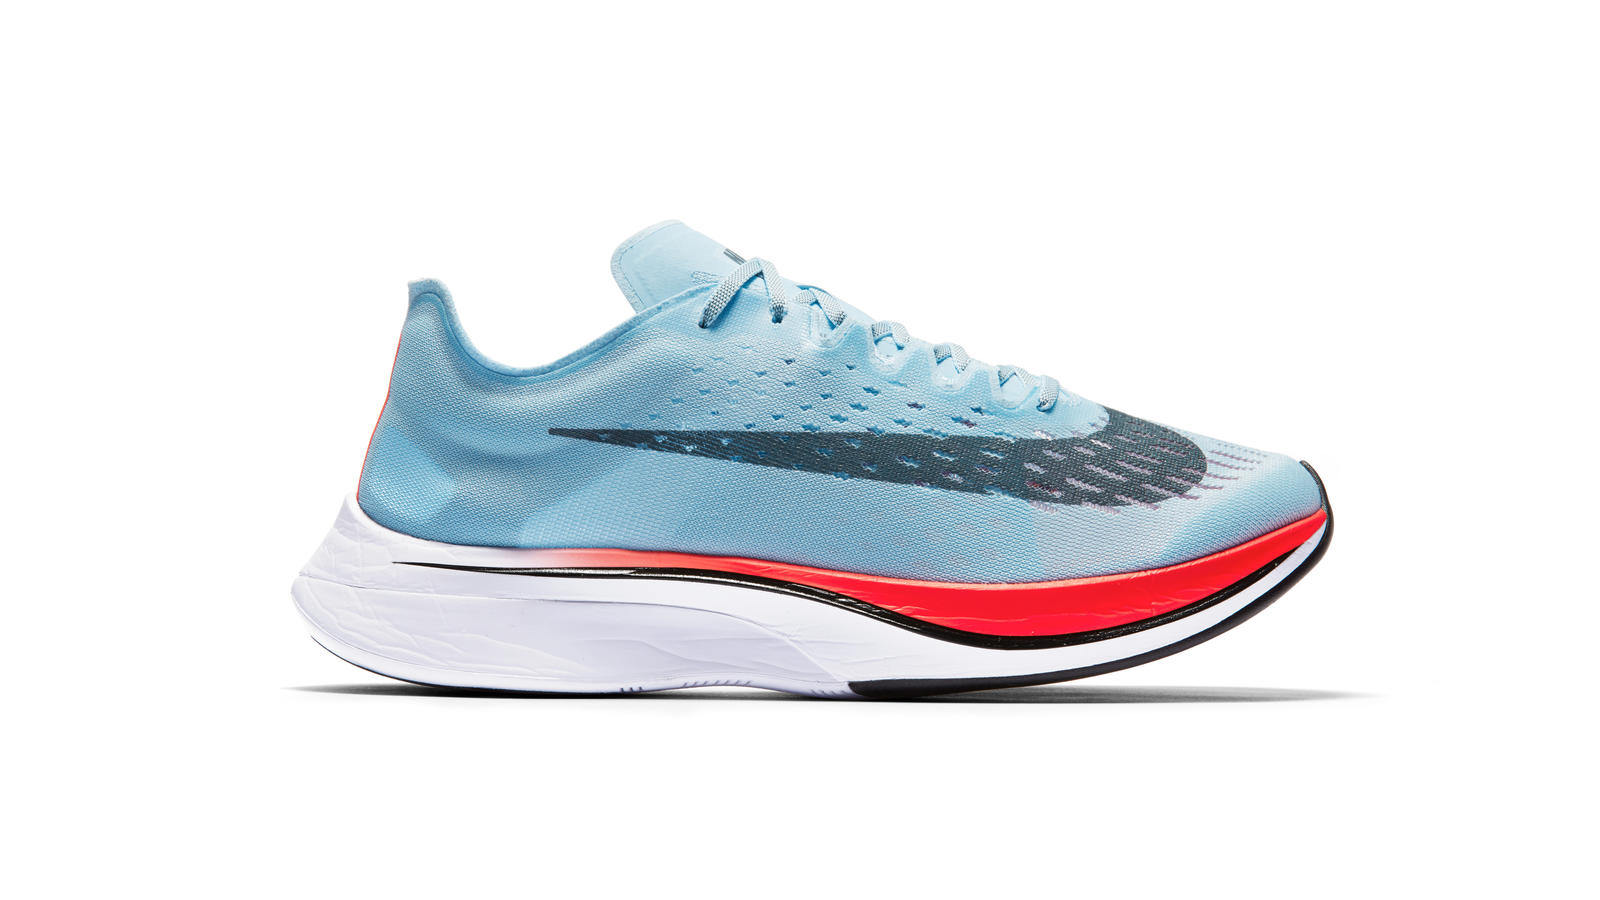 Nike-Zoom-Vaporfly-4percent_8_native_1600.jpg